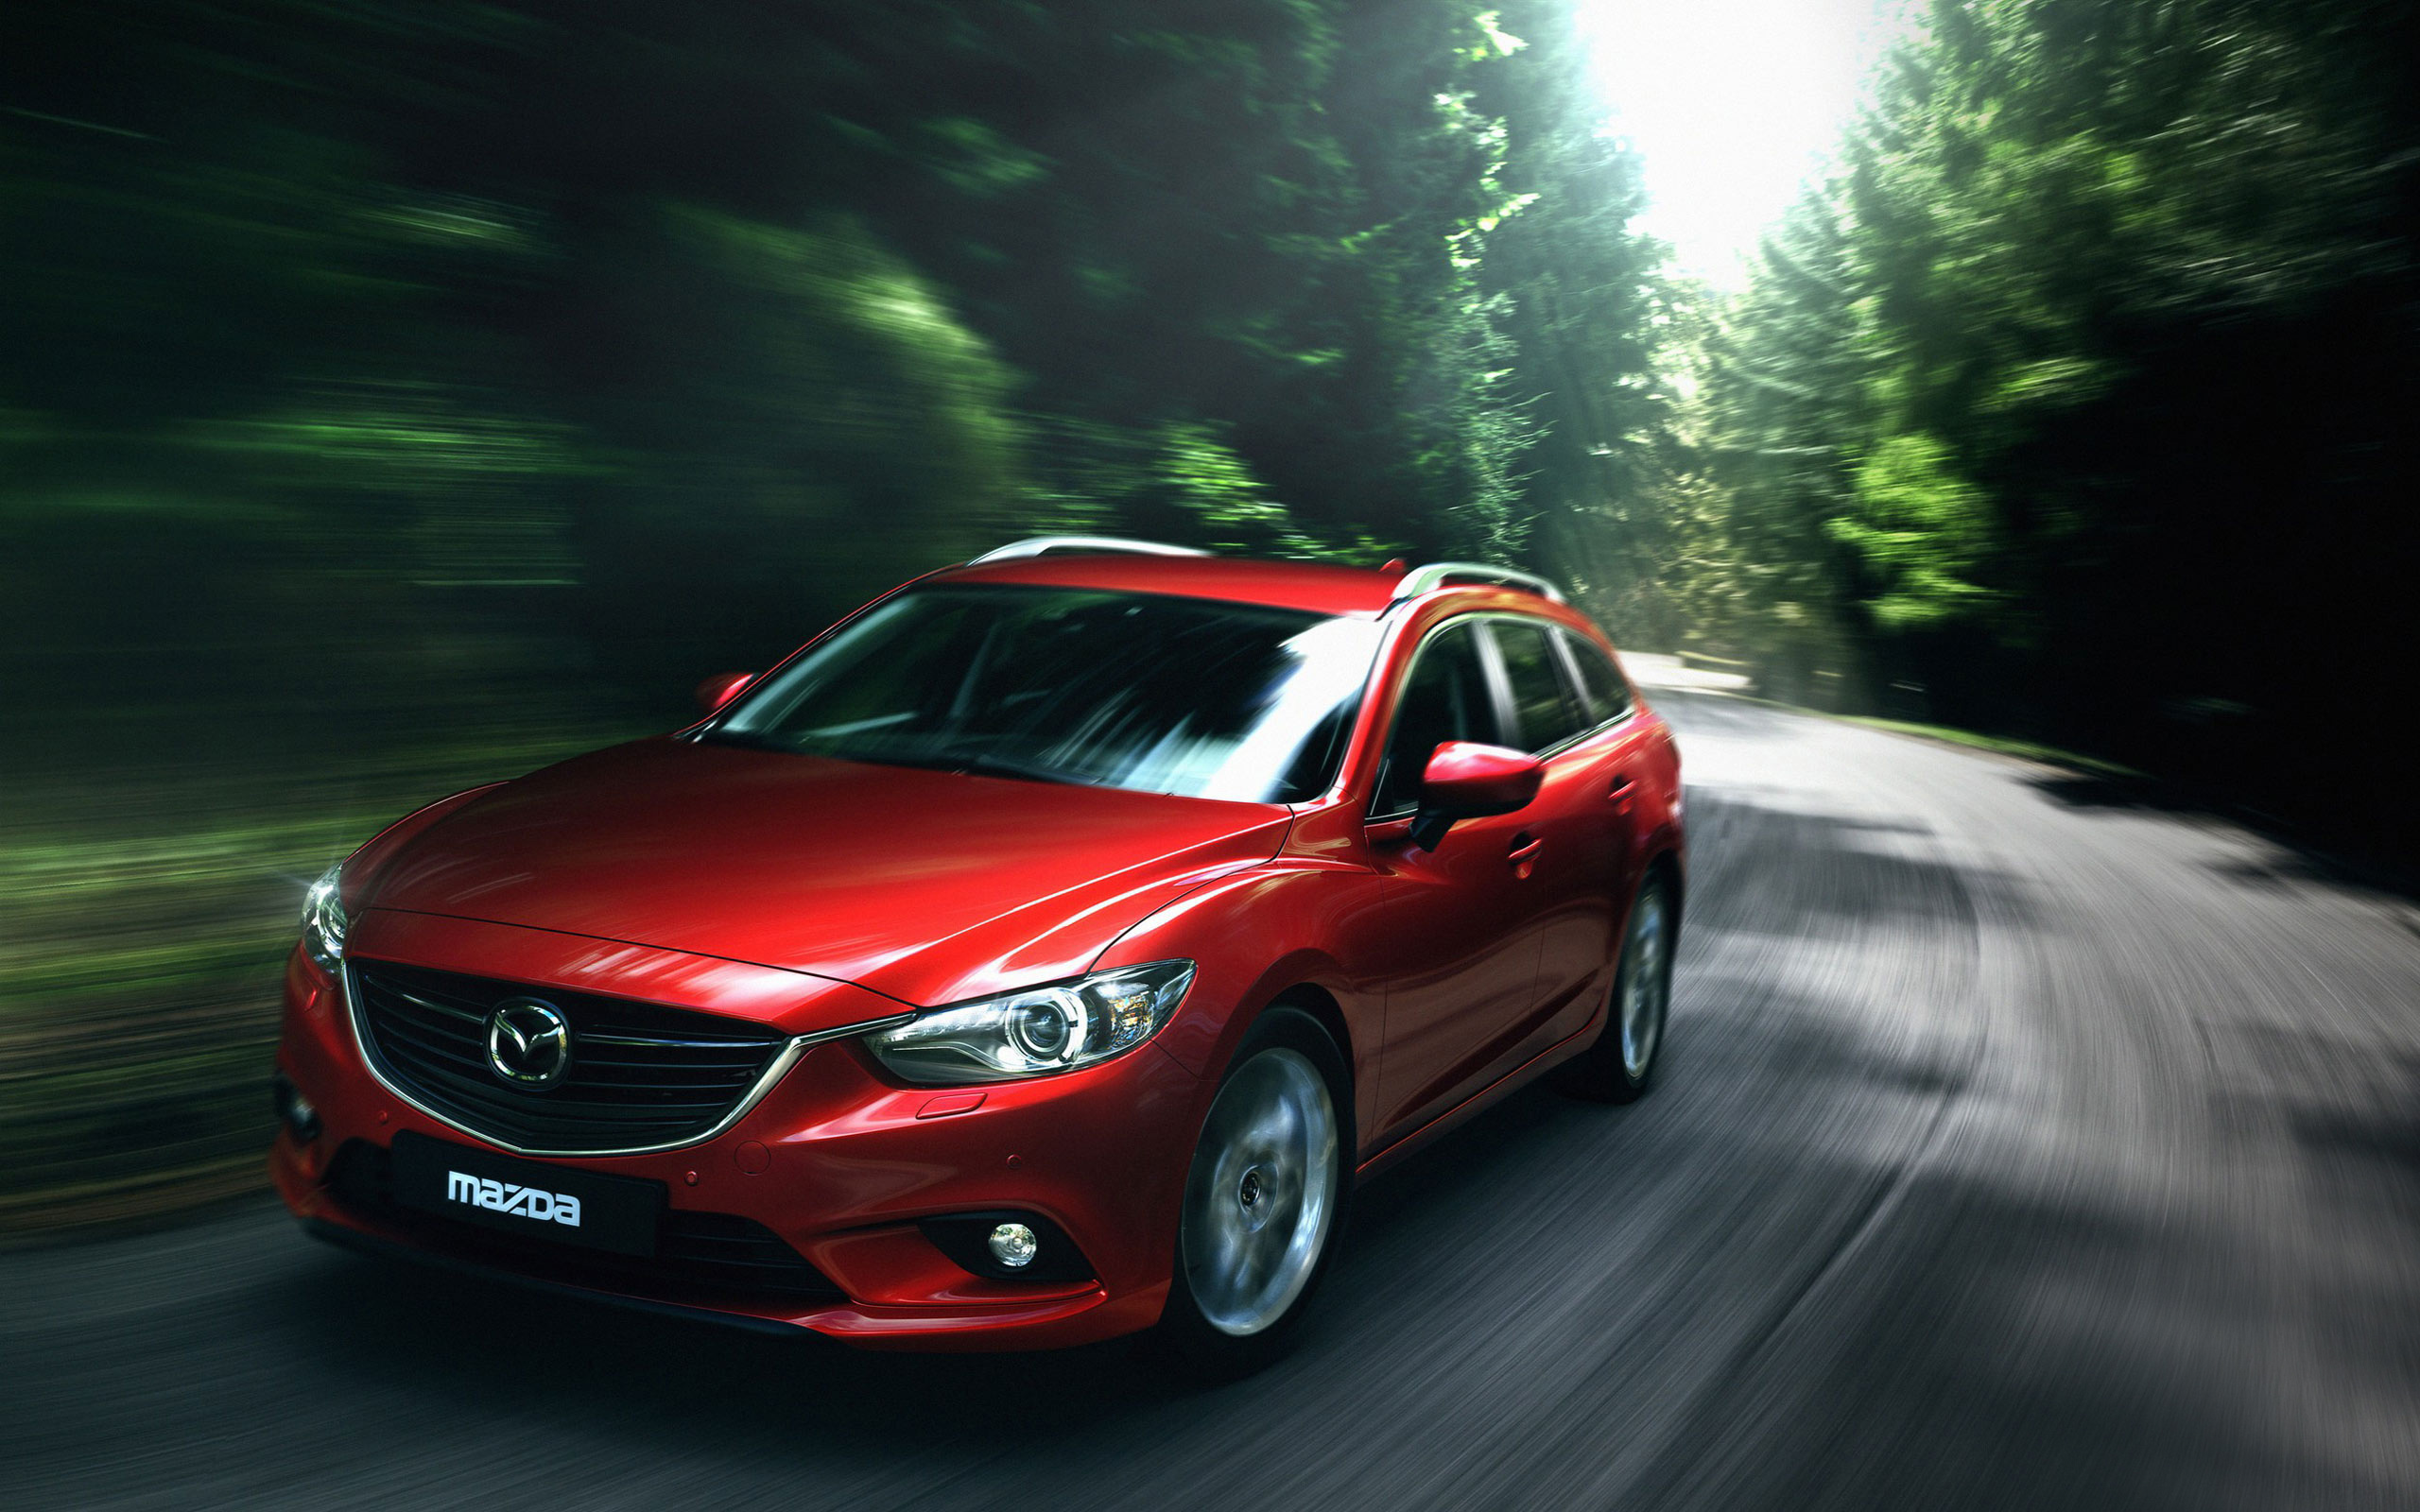 2013 mazda 6 wagon wallpaper hd car wallpapers 2013 mazda 6 wagon voltagebd Choice Image